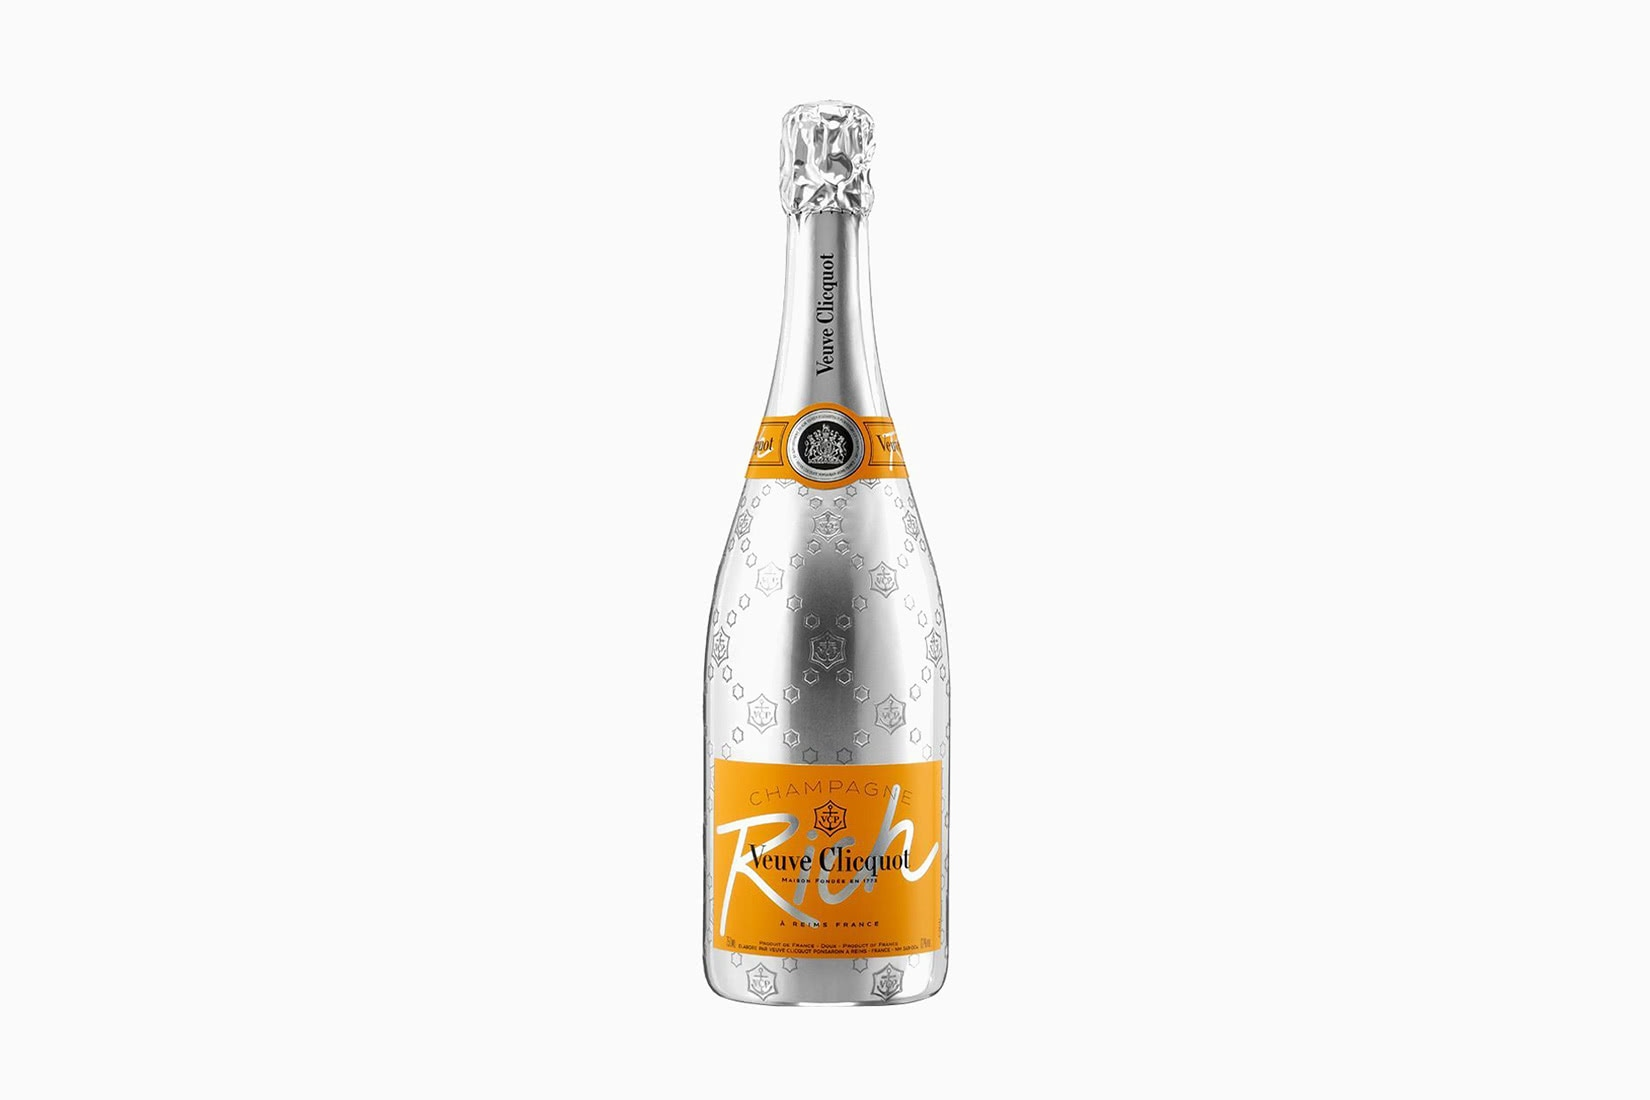 veuve clicquot rich bottle price size - Luxe Digital